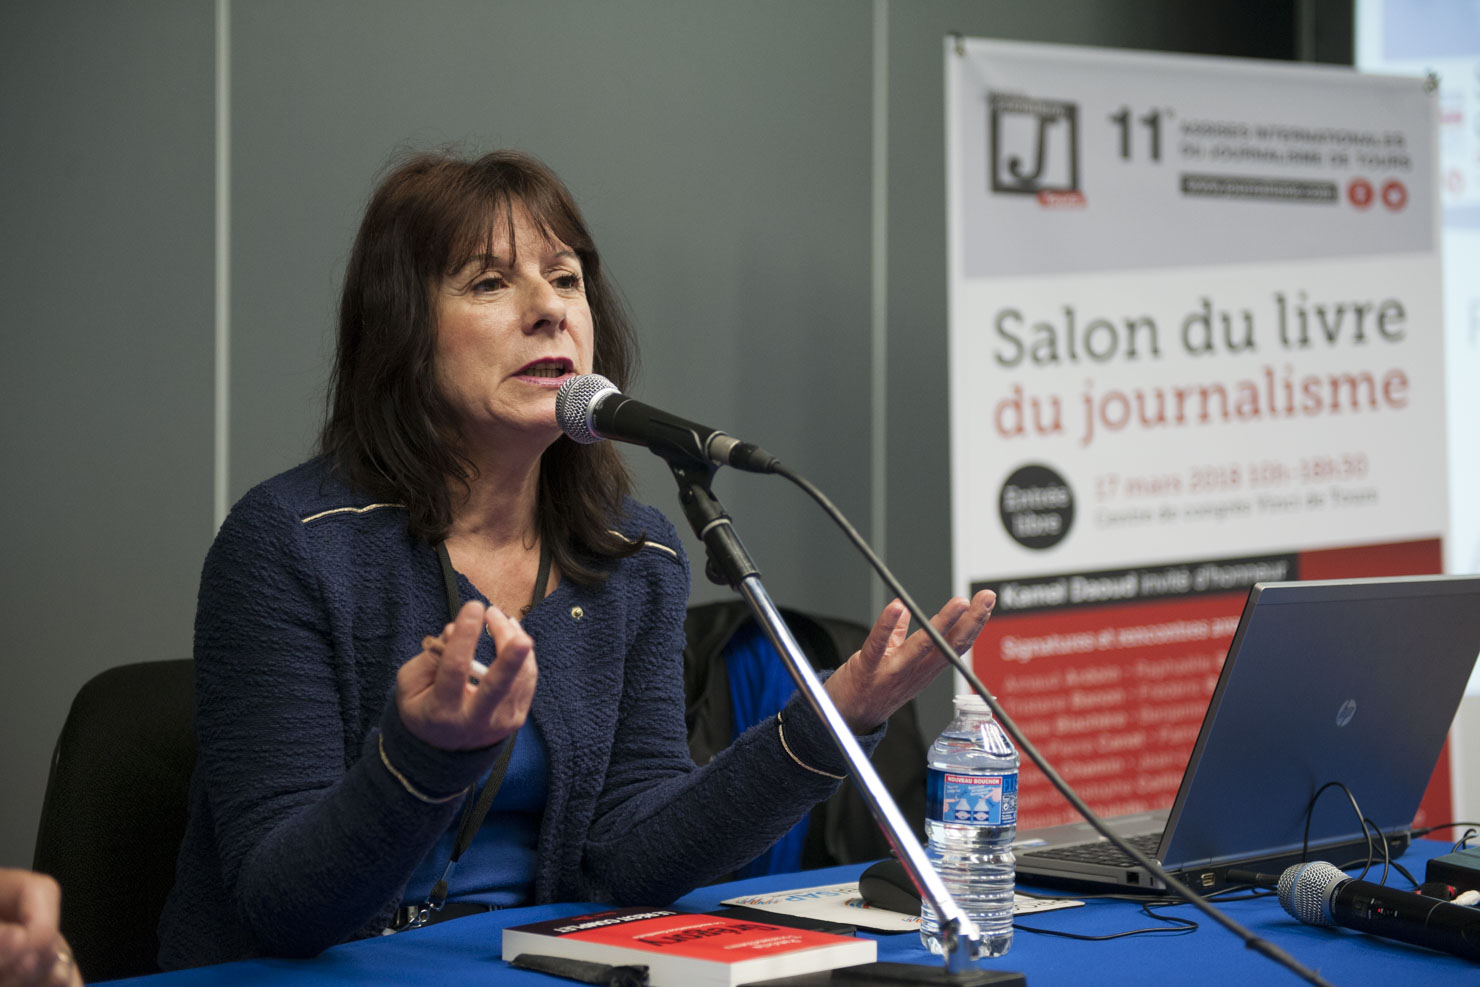 Patricia tourancheau les assises du journalisme for Salon du livre a troyes